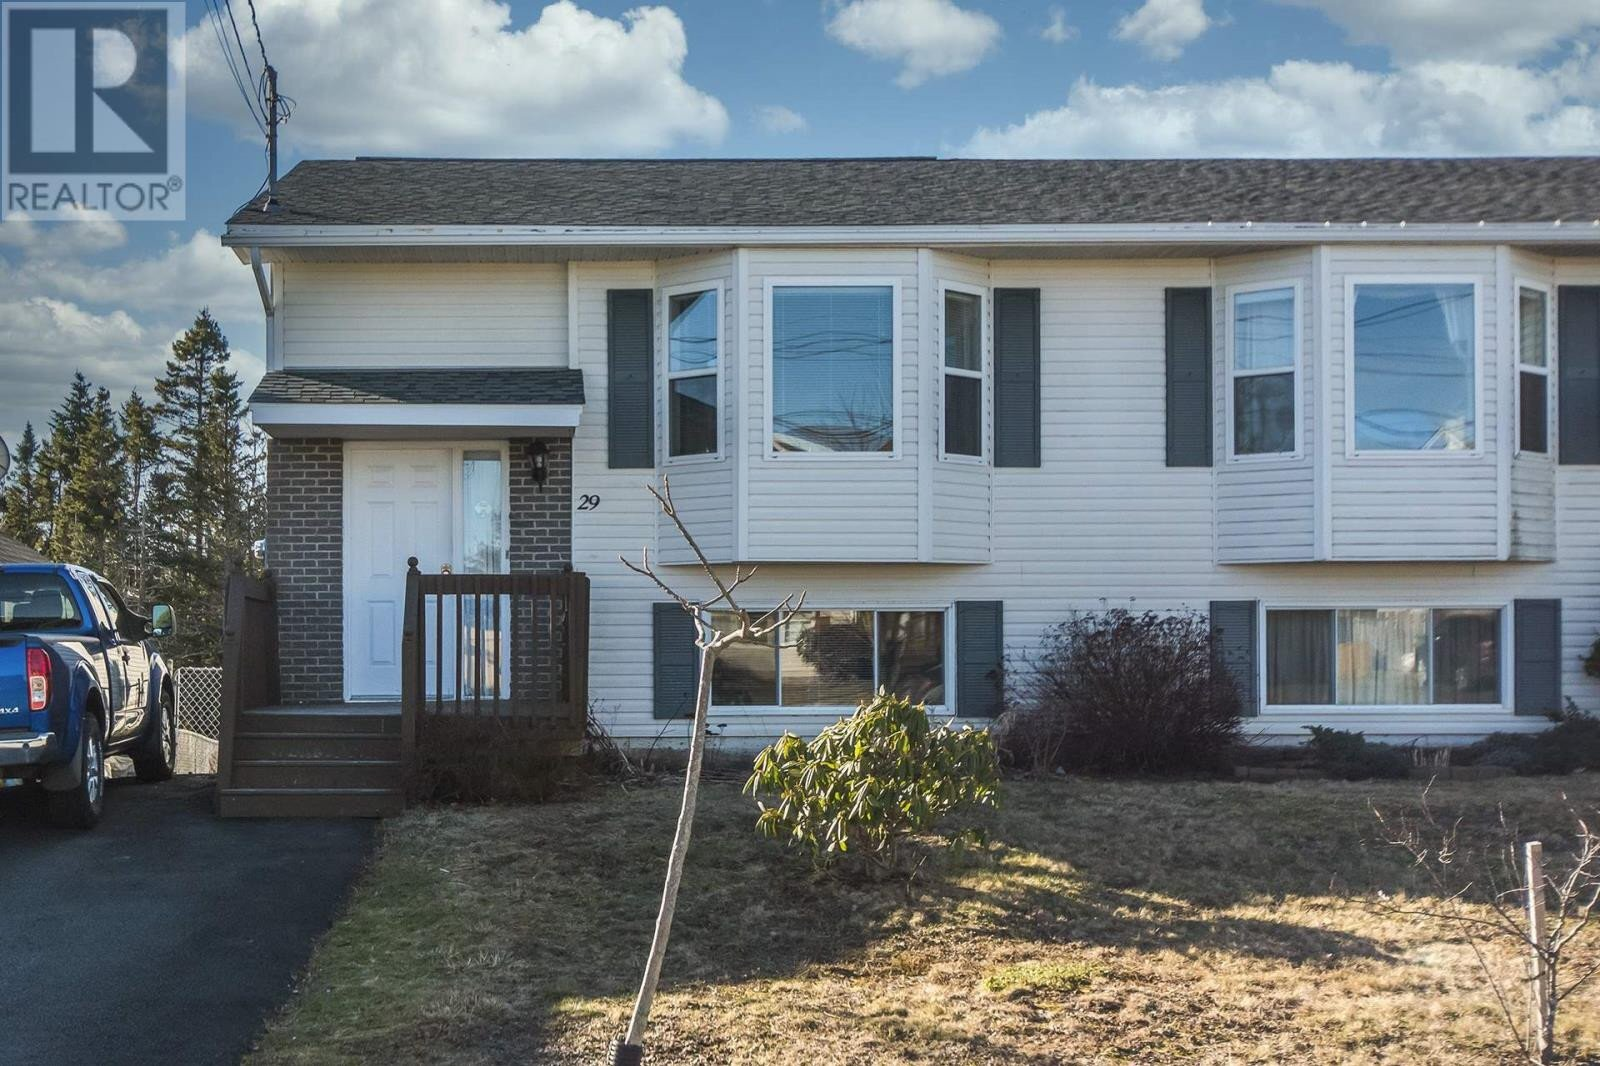 House for sale at 29 Melrose Cres Eastern Passage Nova Scotia - MLS: 202100588